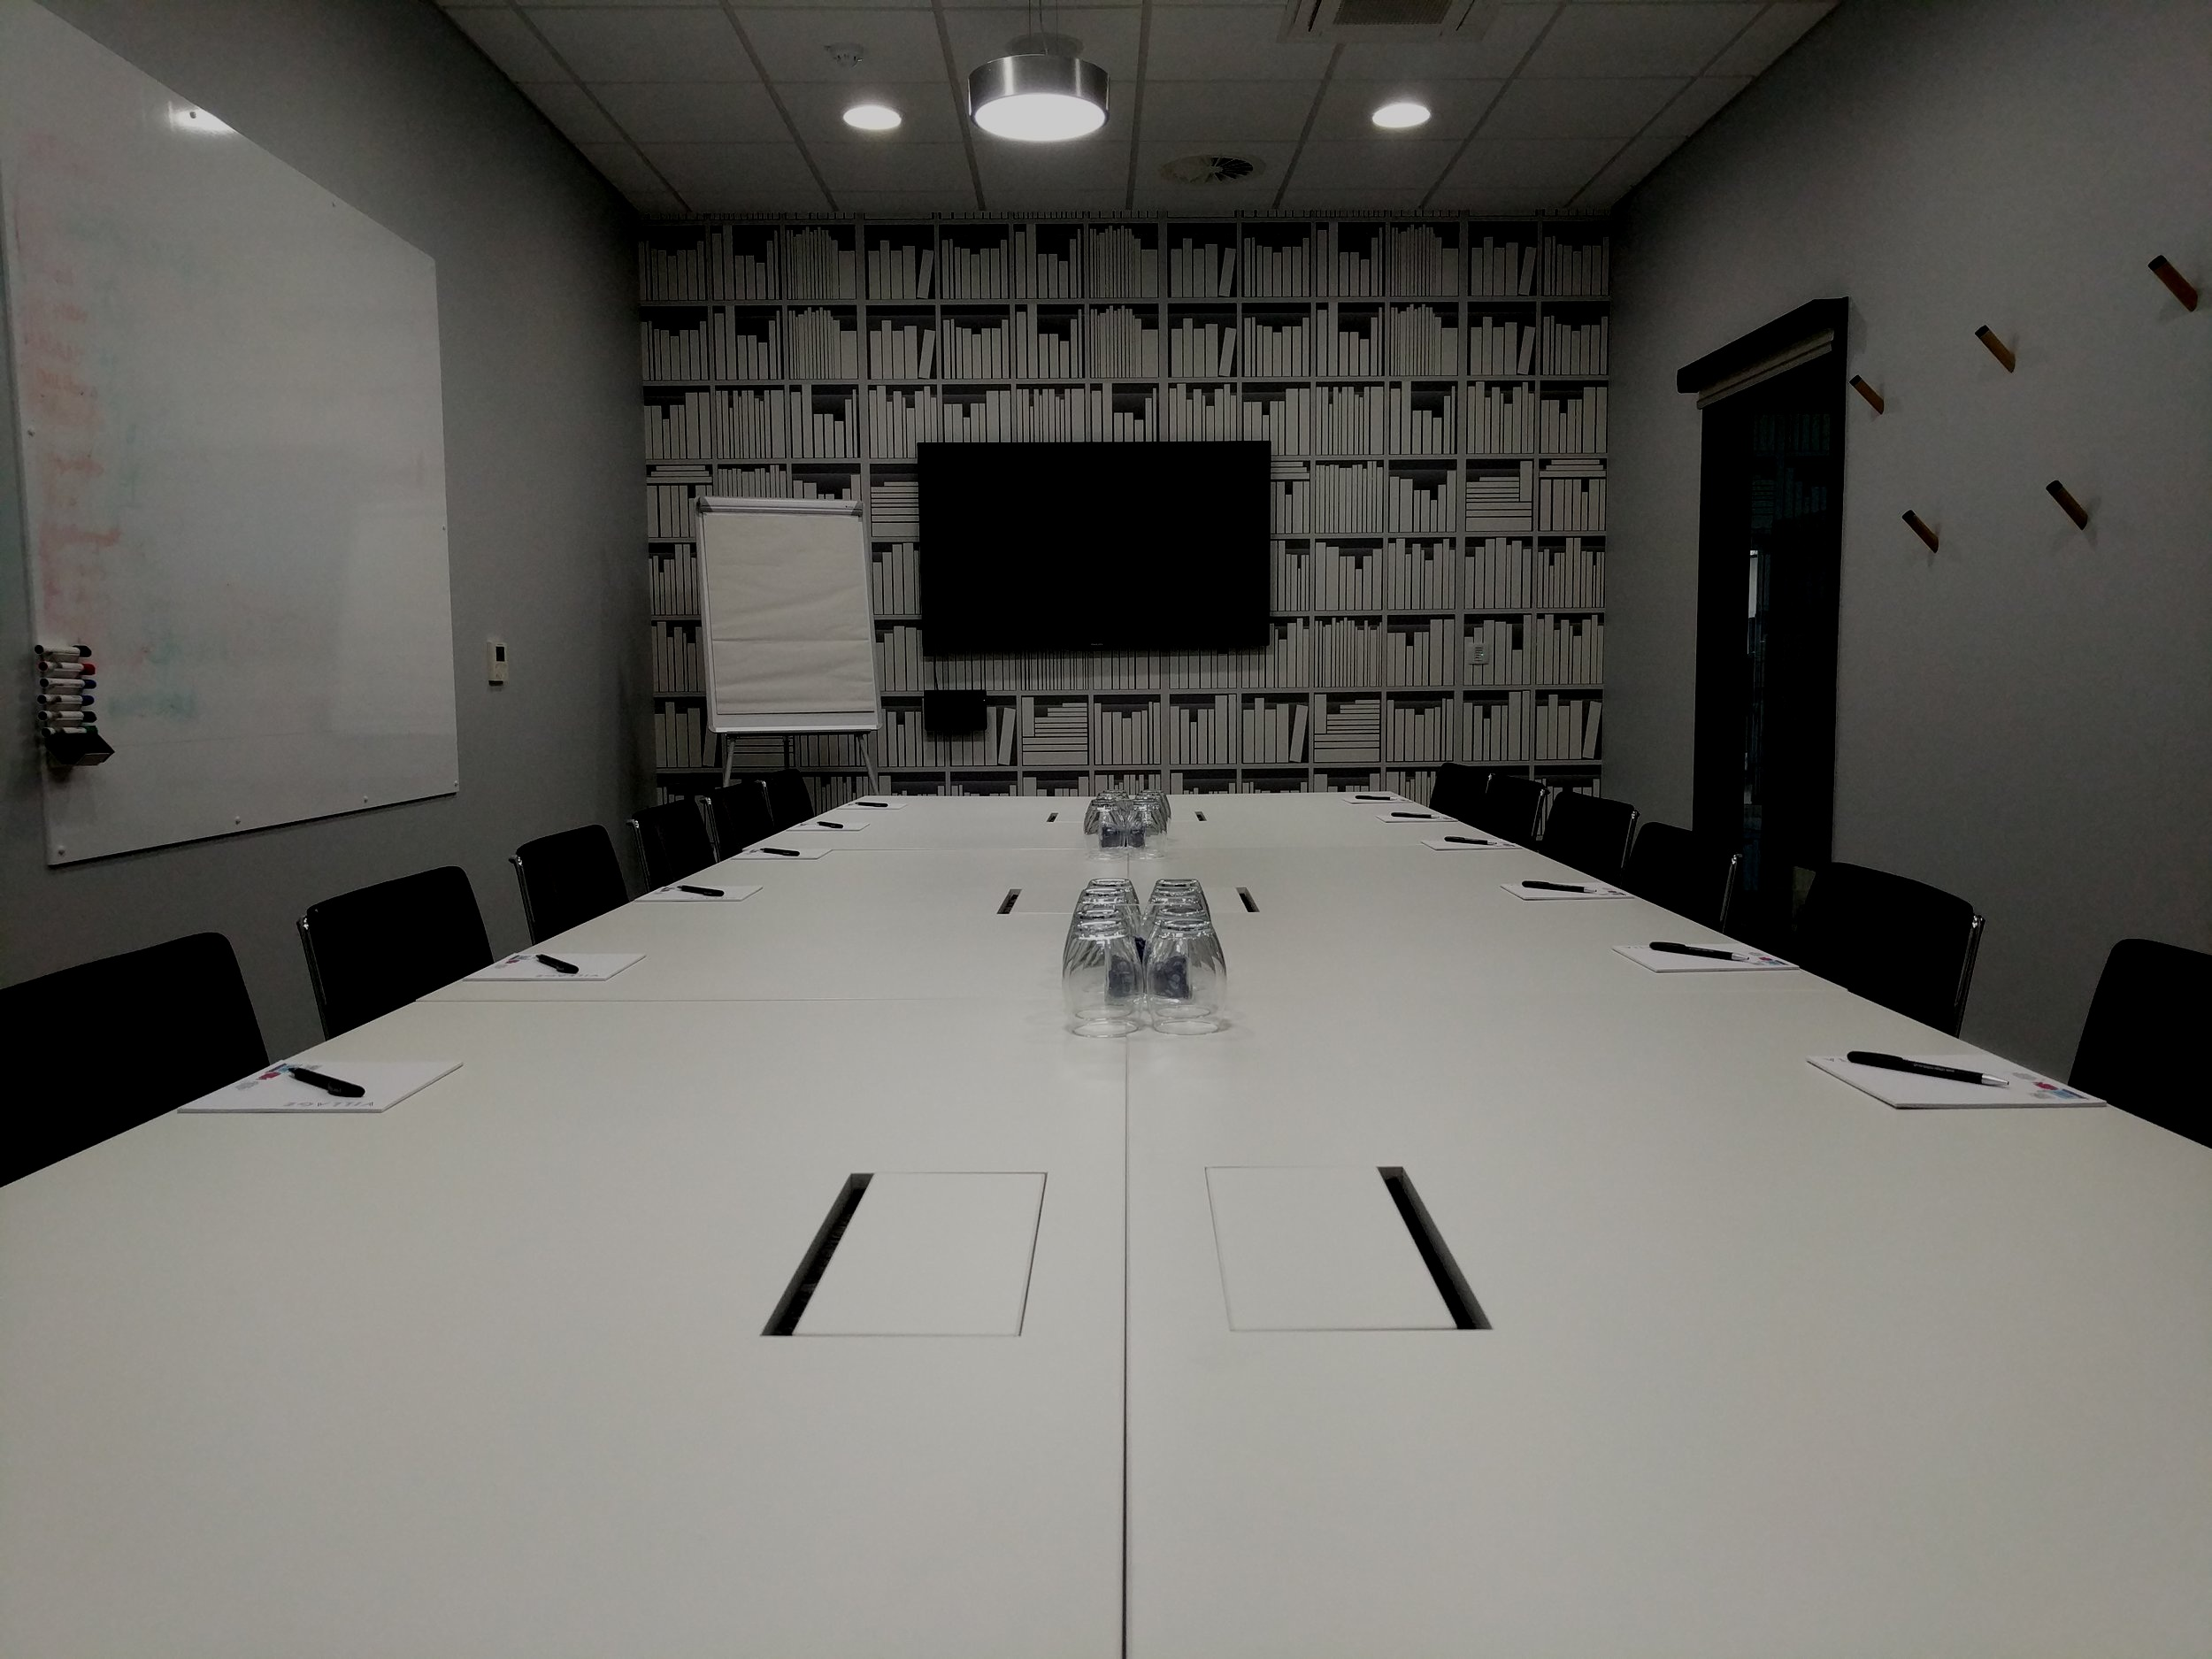 Kaizen Leadership Academy - The Kaizen Leadership Academy hold monthly boardroom sessions where you can network with and learn from other non-competing companies with a focus on improving leadership skills.